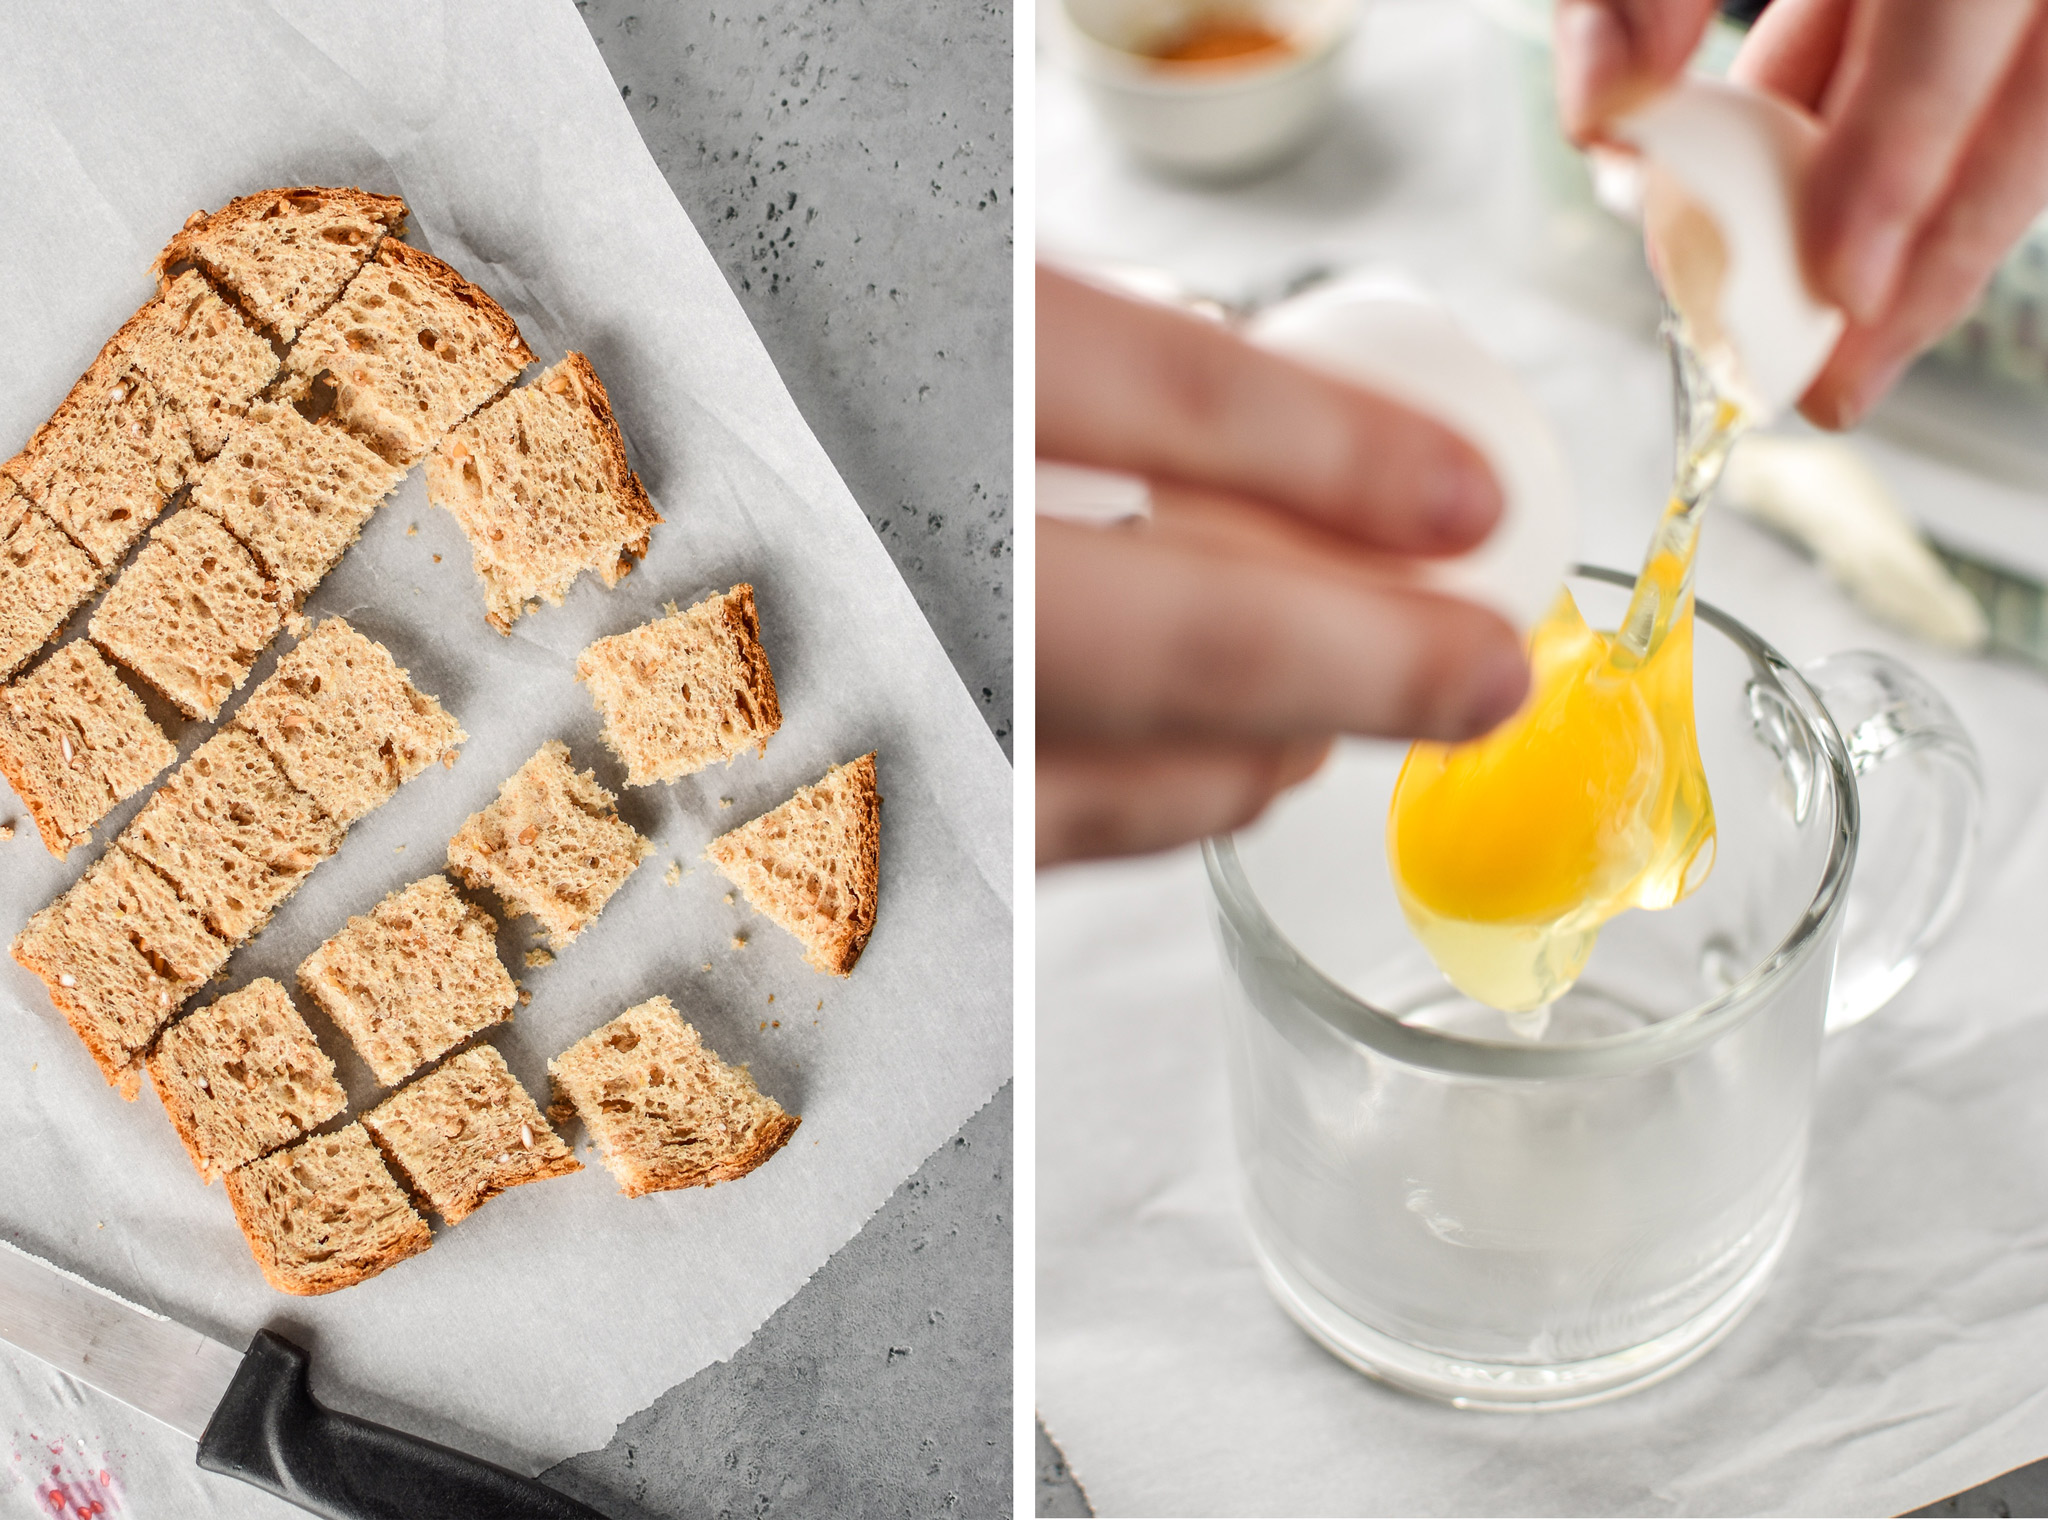 Left: Bread cut up for the microwave mug french toast. Right: Cracking an egg into the mug.